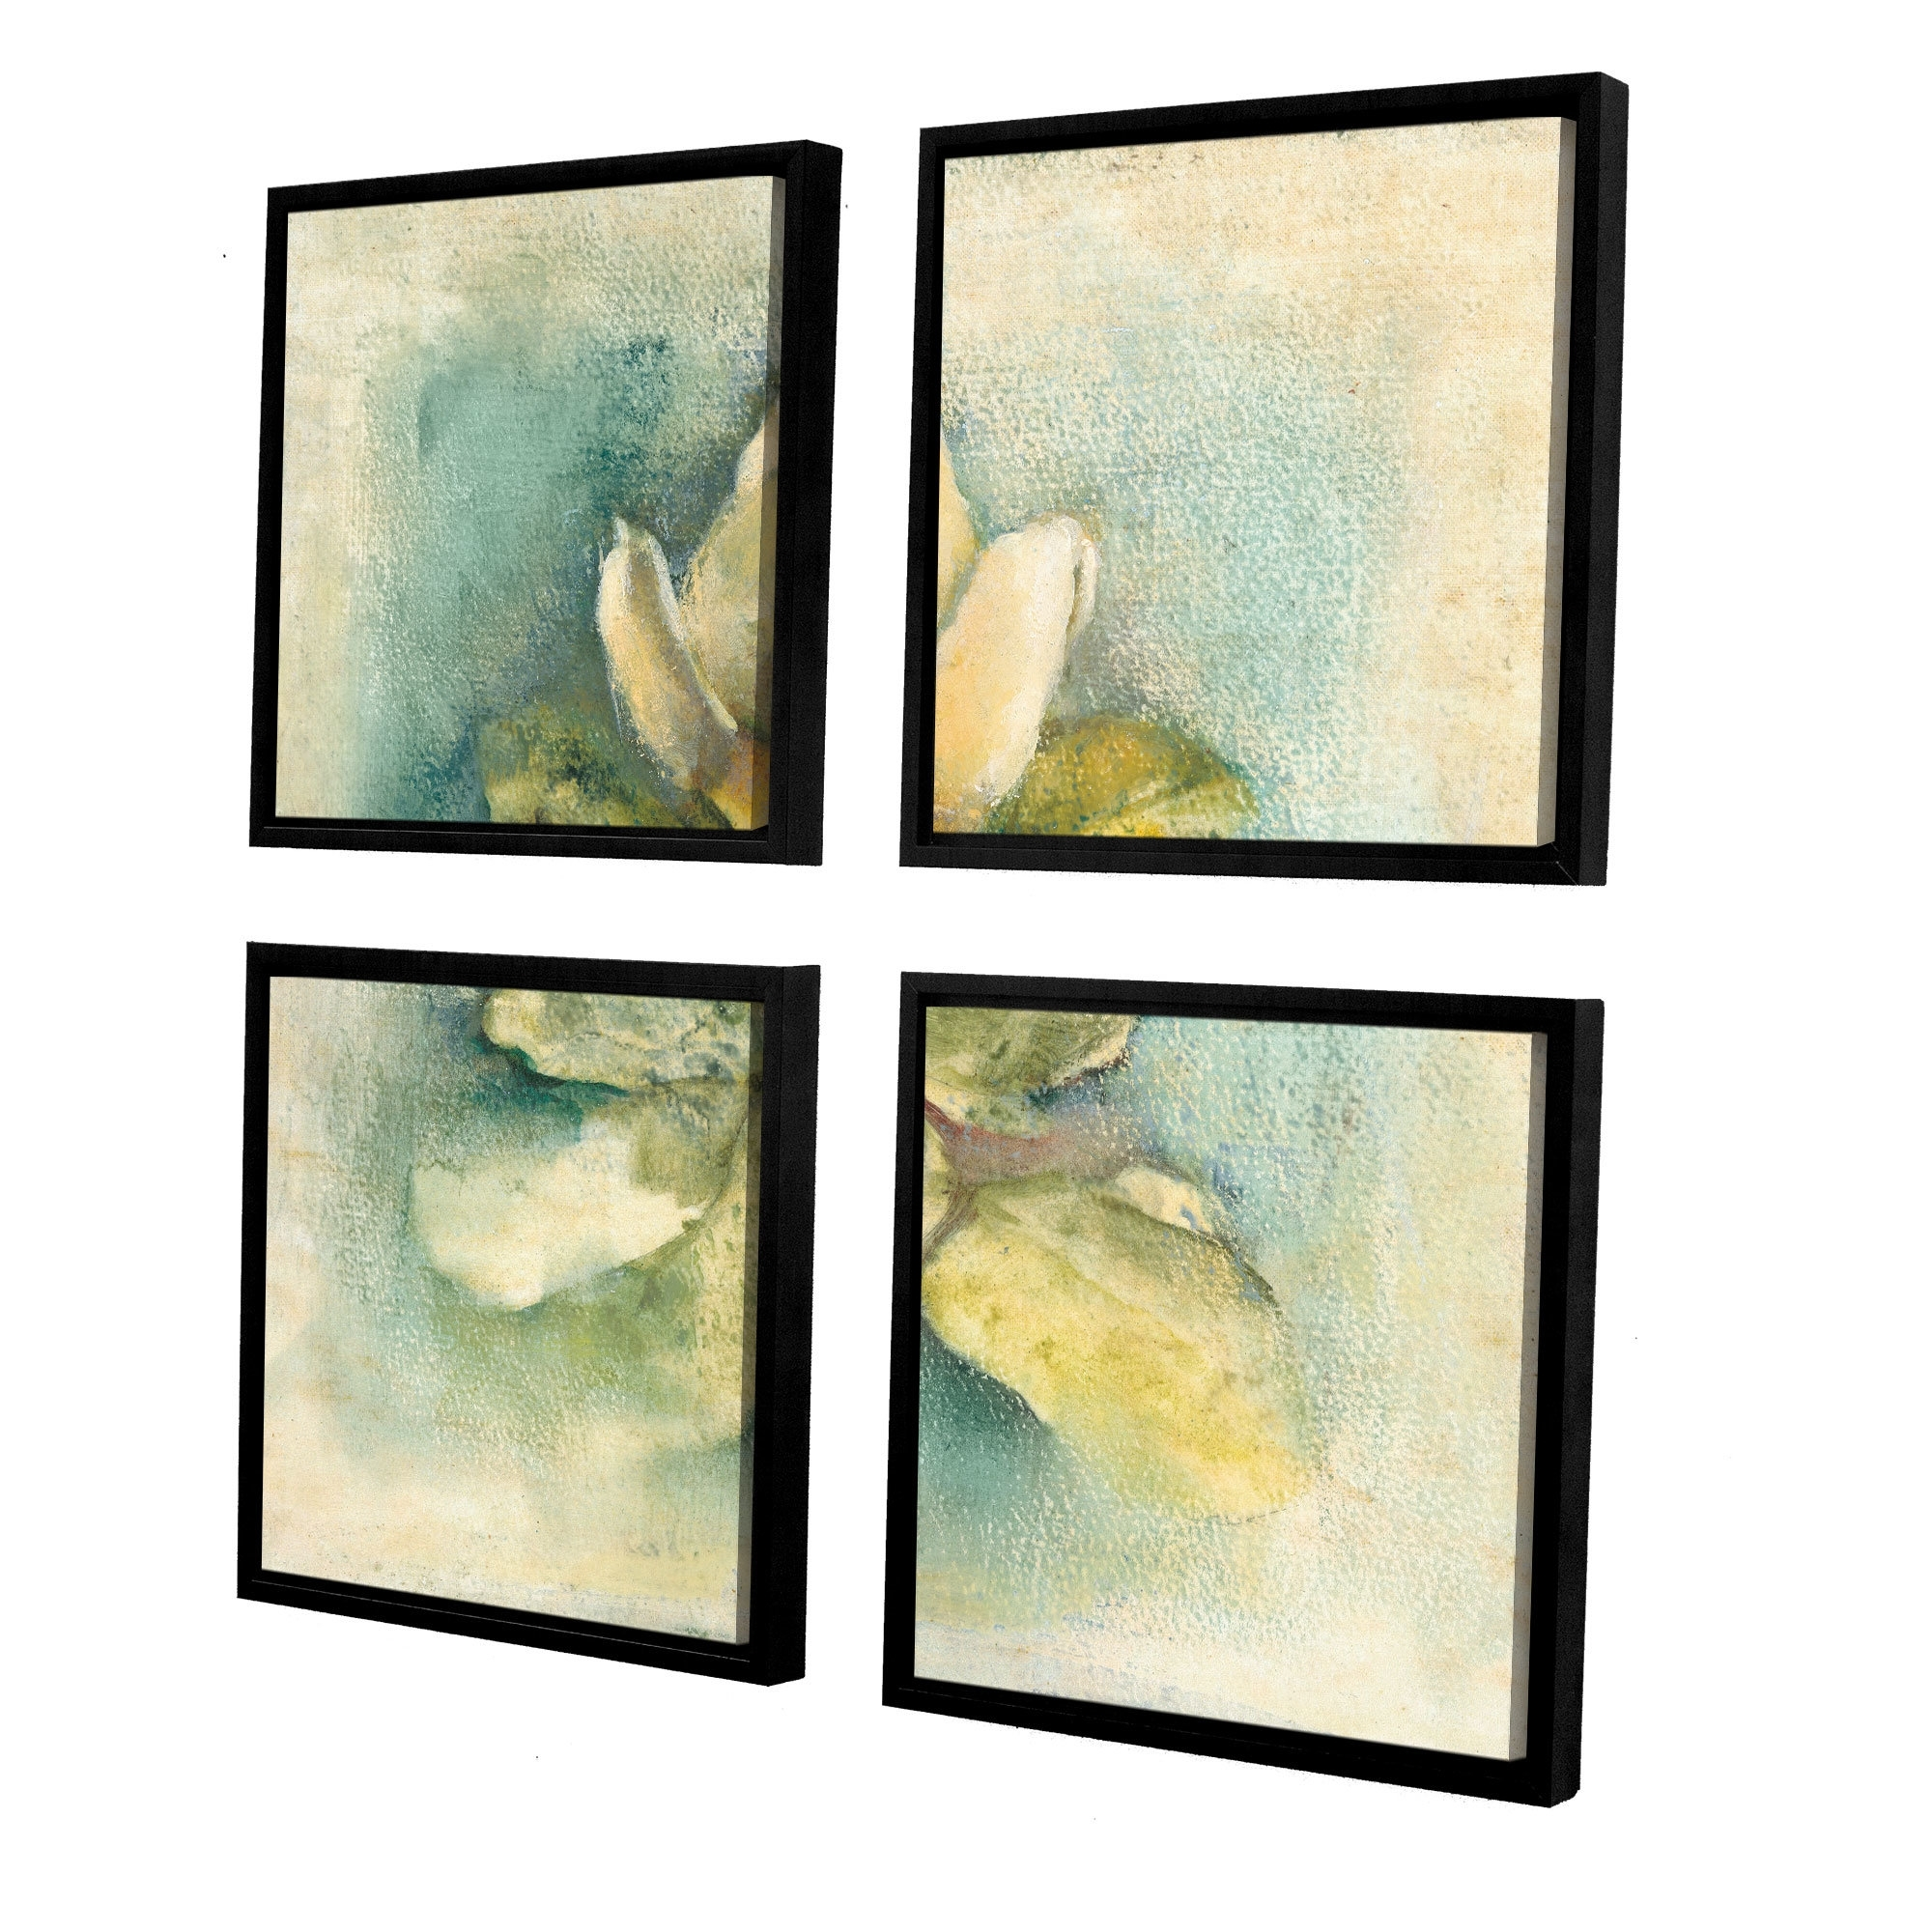 Artwall 'french Magnolia'cheri Blum 4 Piece Framed Painting In Current Cheri Blum Framed Art Prints (View 2 of 15)